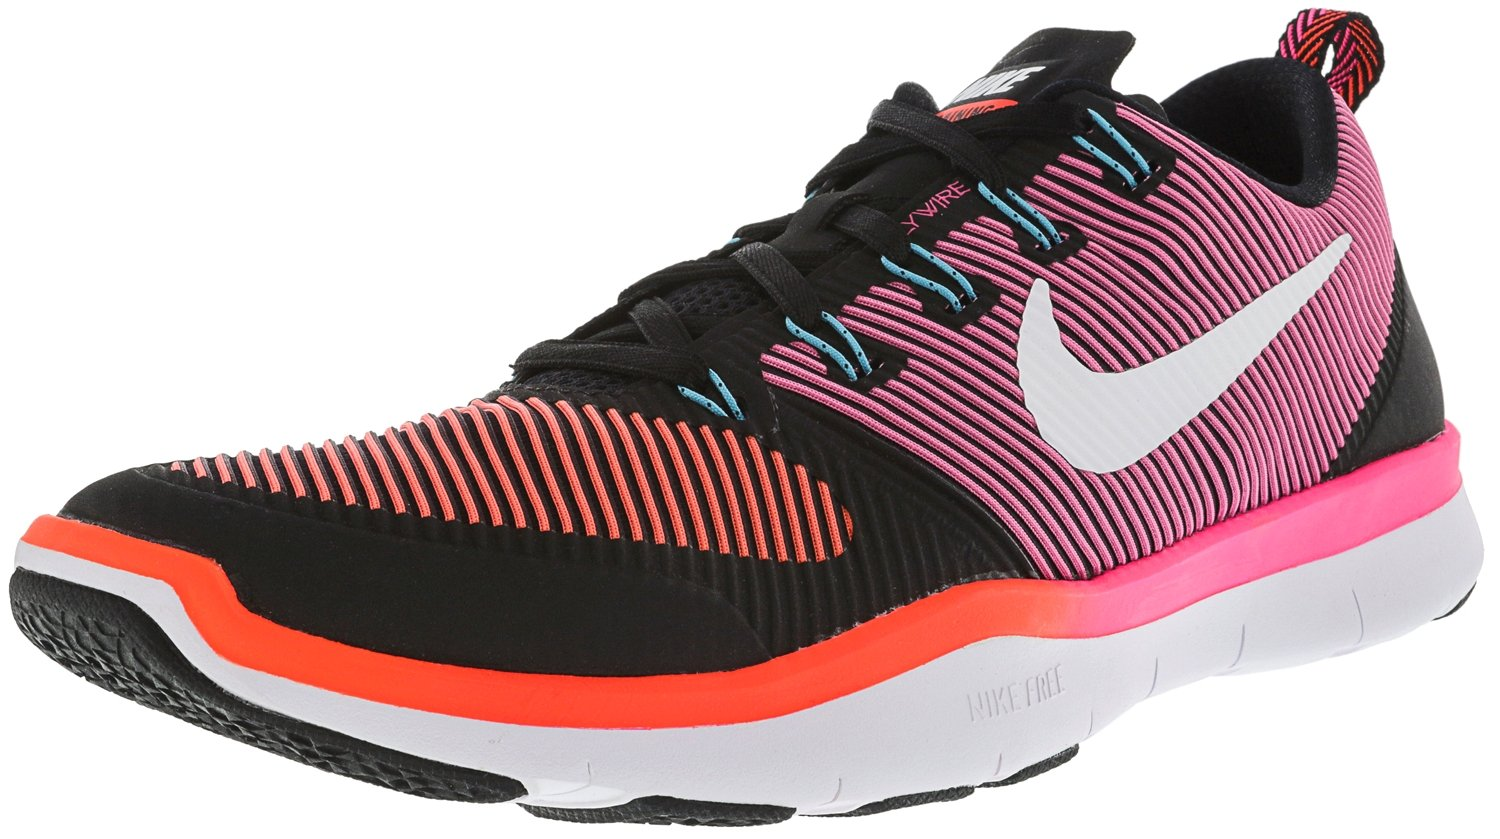 NIKE Men's Free Train Versatility Running Shoes B014GDRNM4 9.5 D(M) US|Black / White / Total Crimson / Hyper Pink